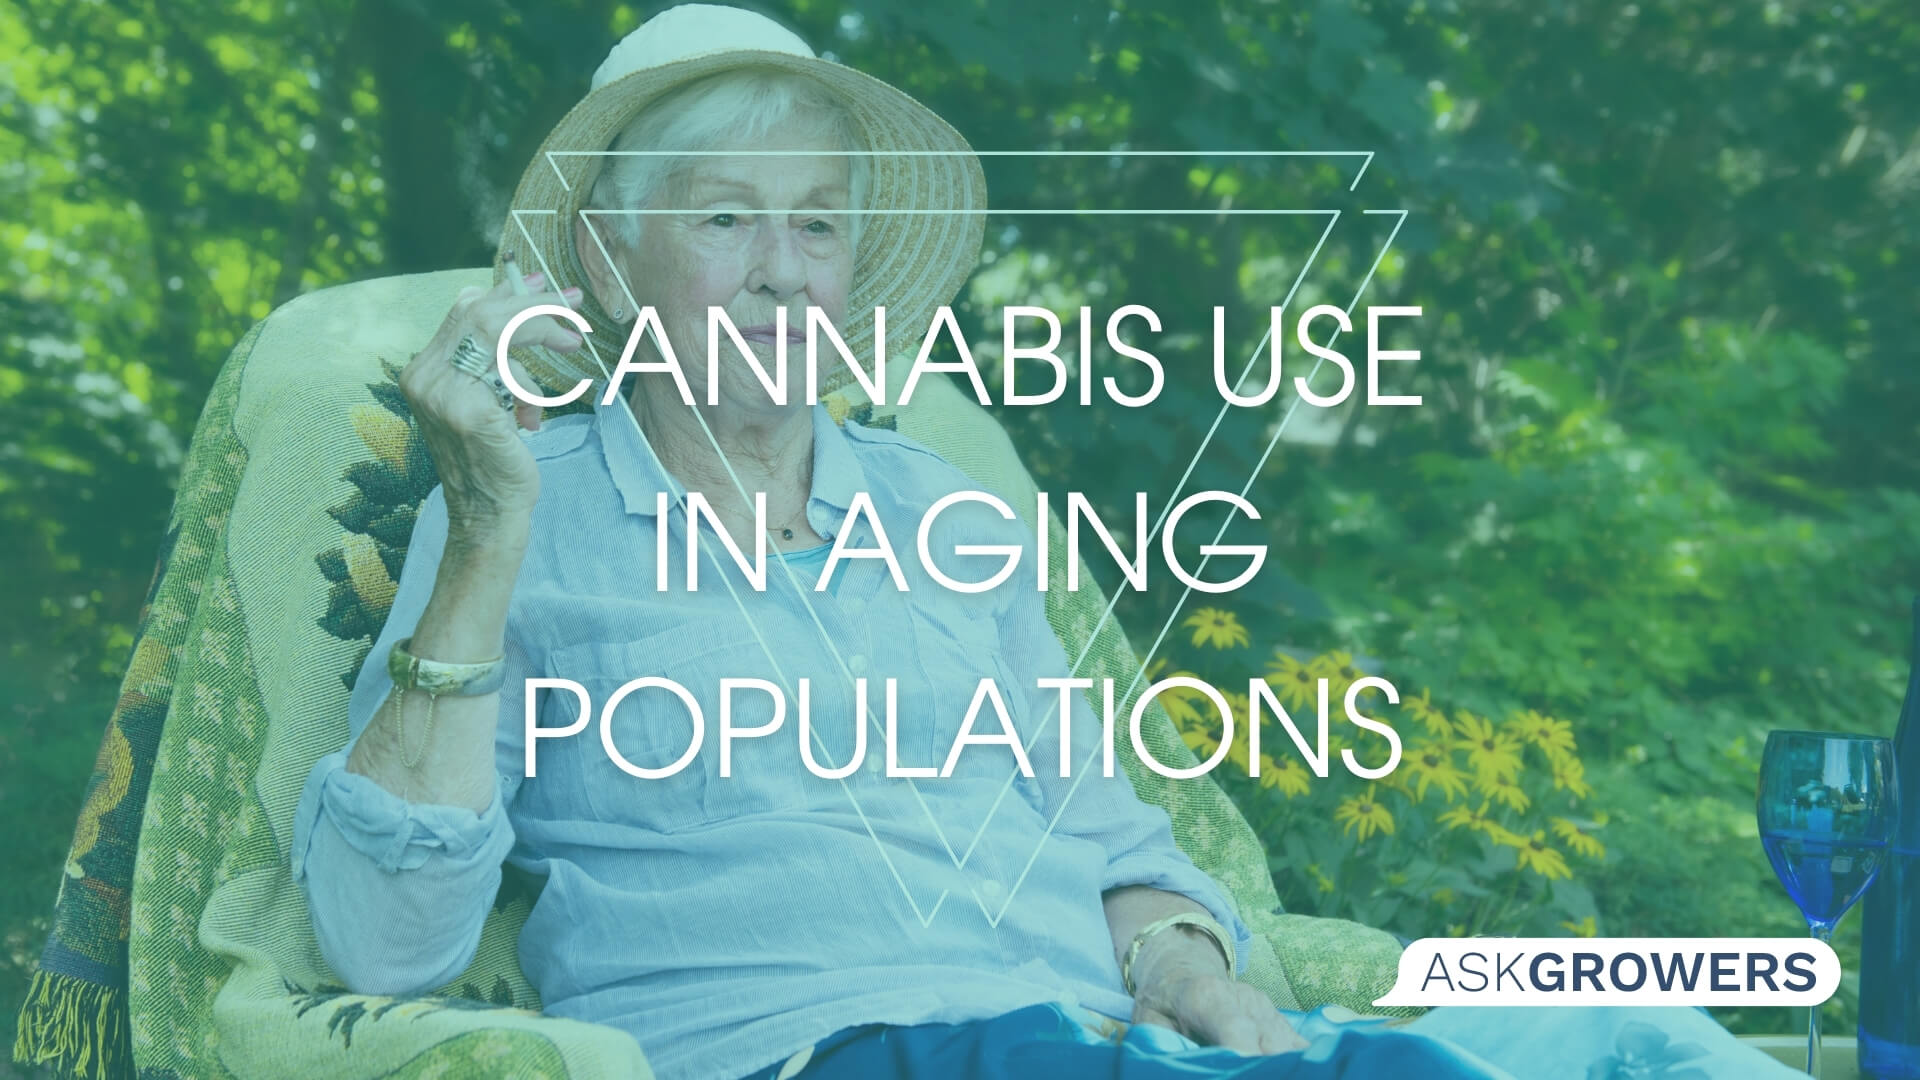 Cannabis Use in Aging Populations, AskGrowers